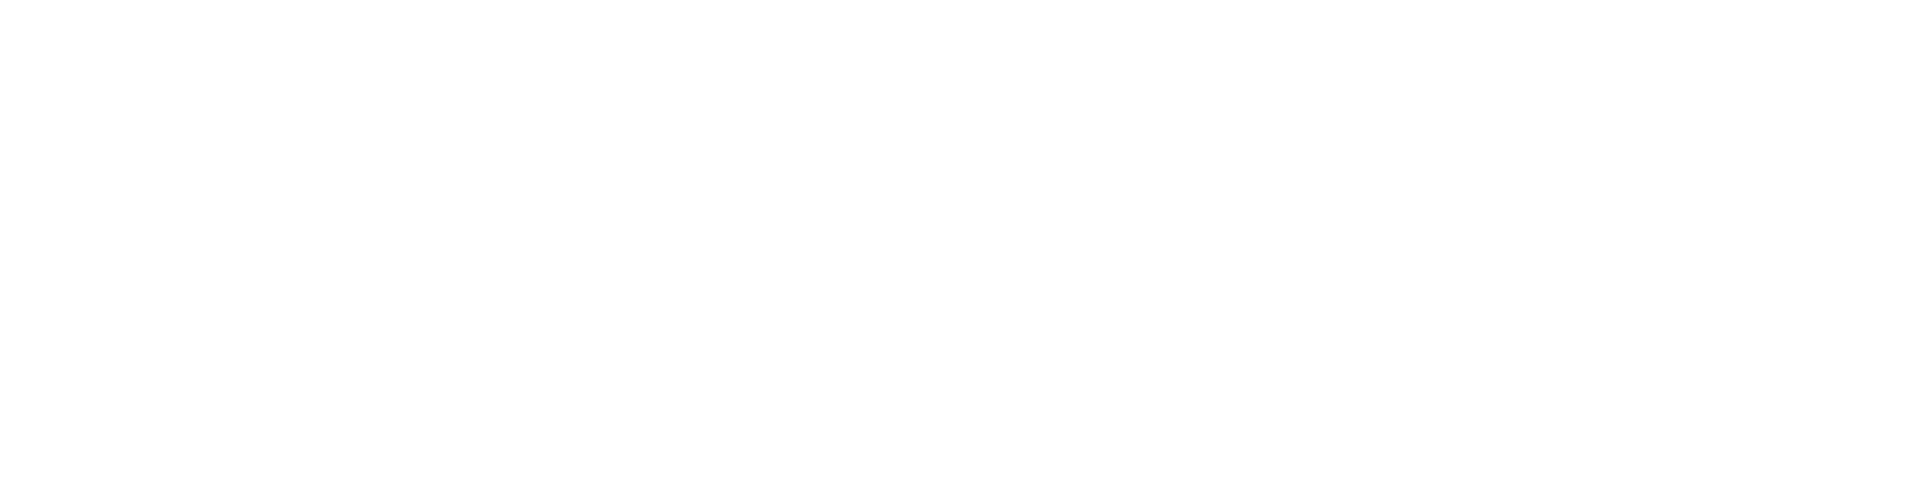 Customize Sandals Accesories. Customize every element of our best-selling sandals, flips, and accessories. Shipped within 10 Business Days or Less. Assembled USA.